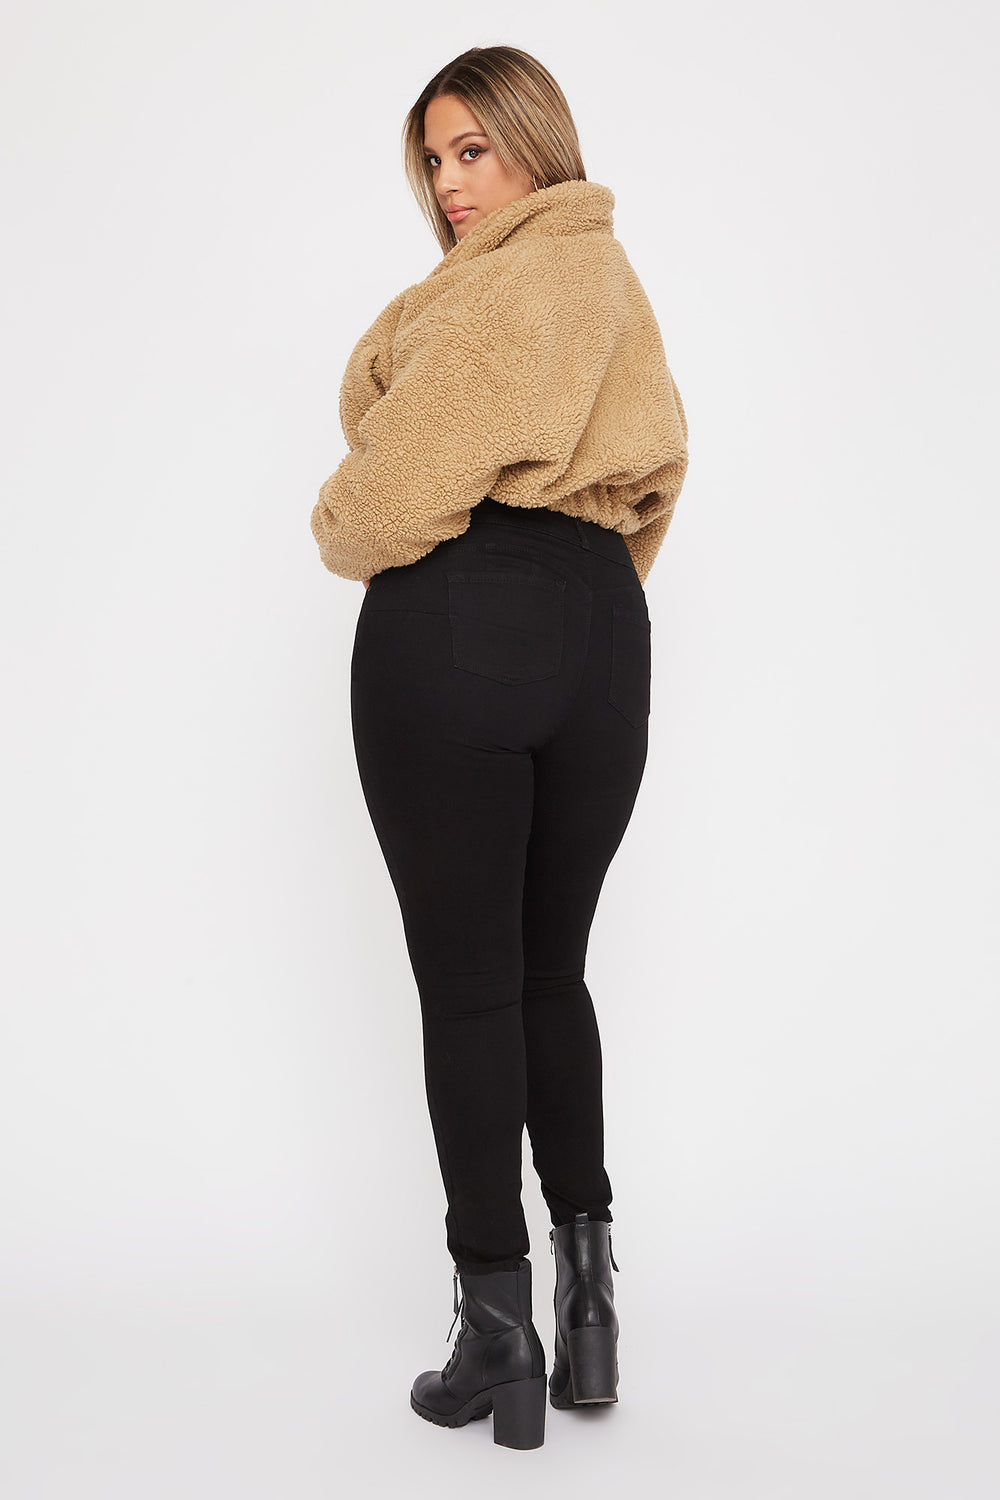 Plus Size Butt, I Love You 3-Tier High-Rise Push-Up Skinny Jean Black